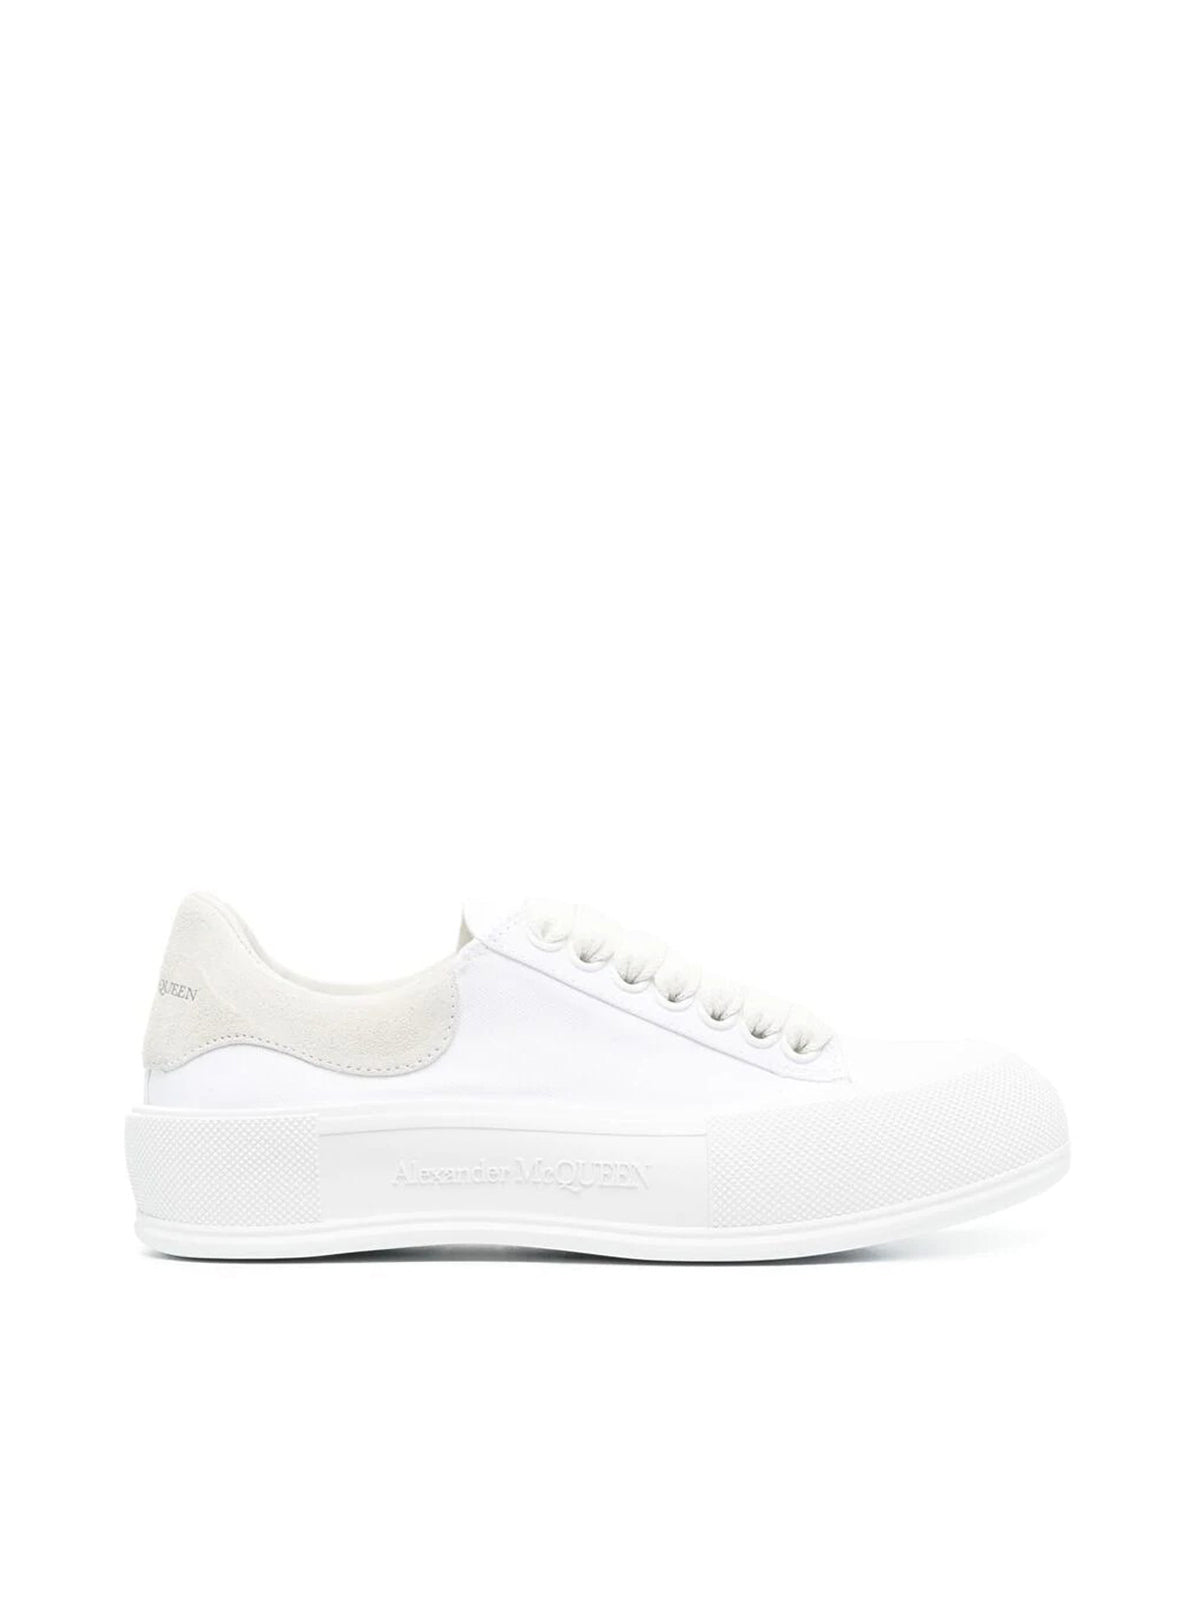 Deck lace-up sneakers